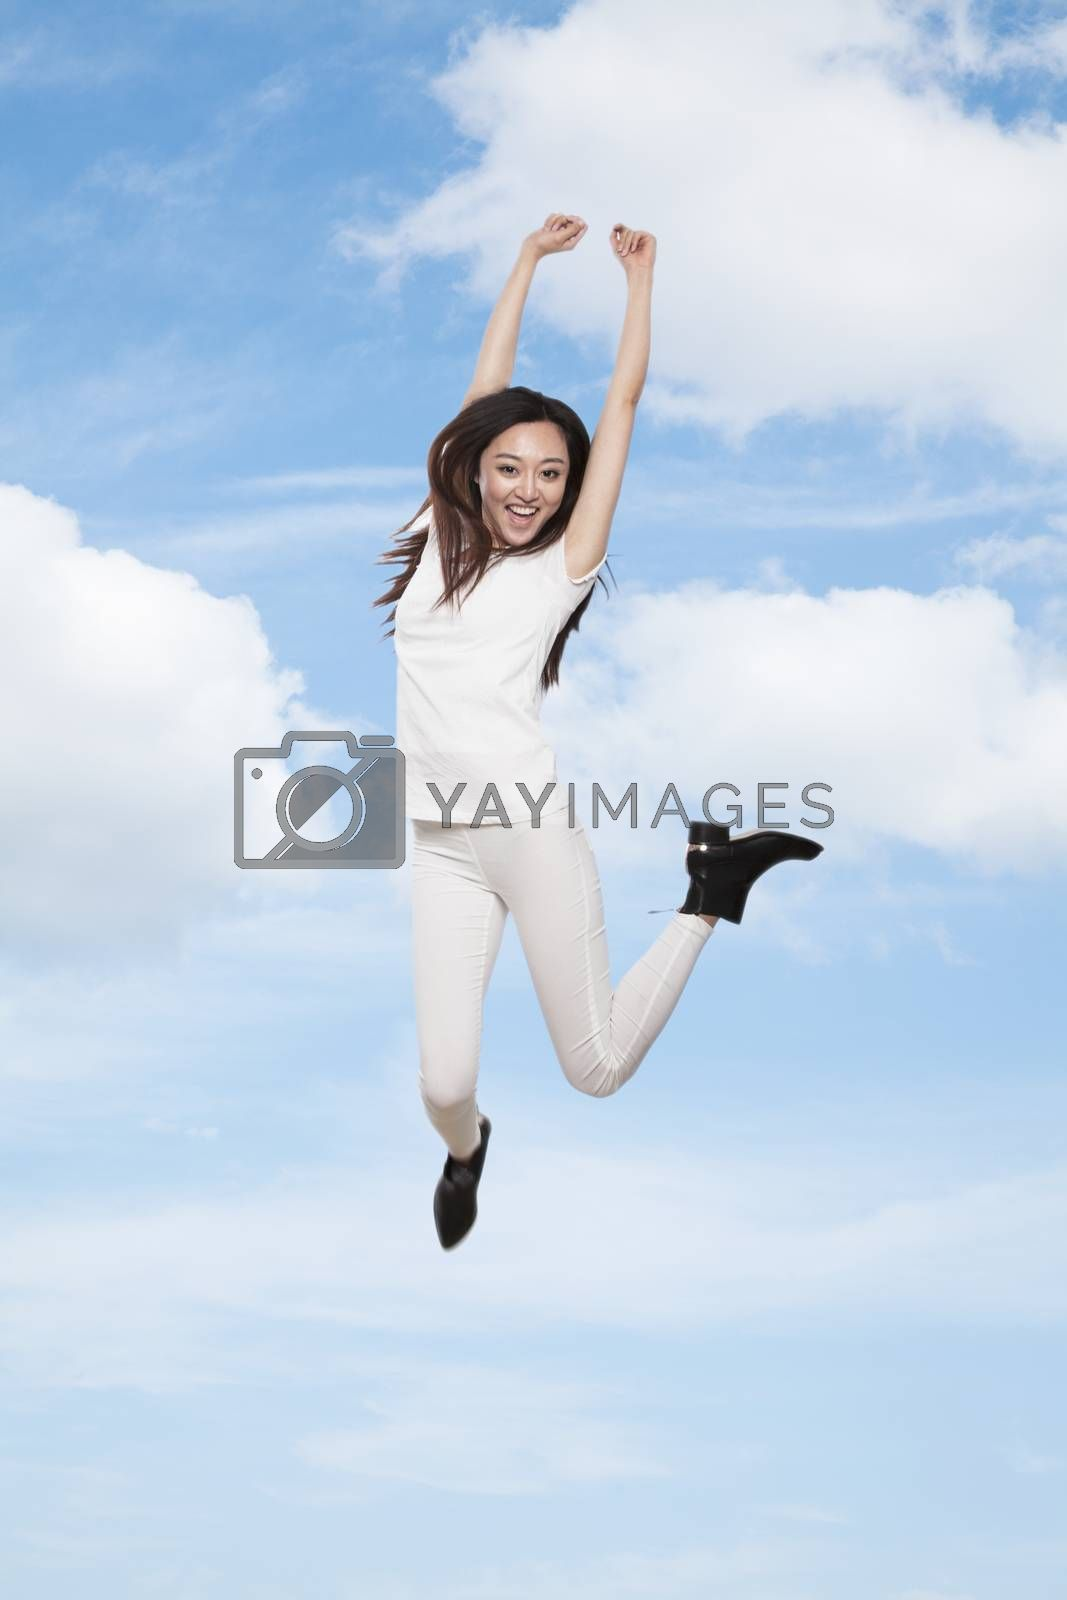 Young smiling woman jumping in mid-air, sky and cloud background